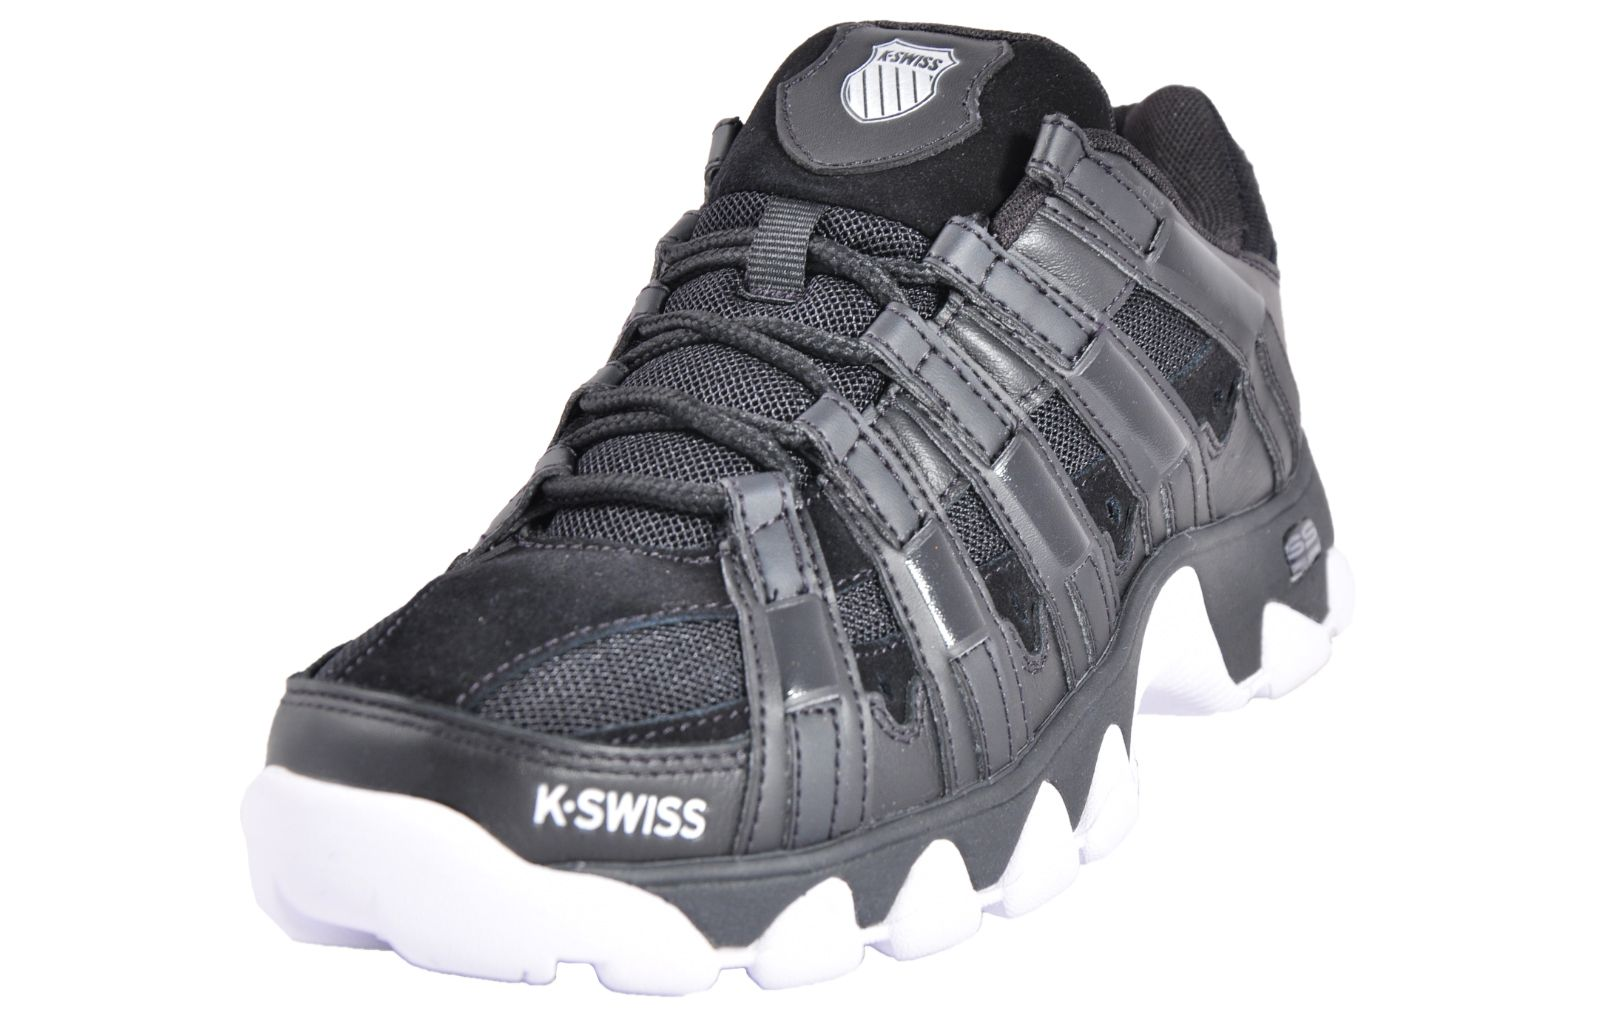 K Swiss Heritage ST429 Limited Edition Mens